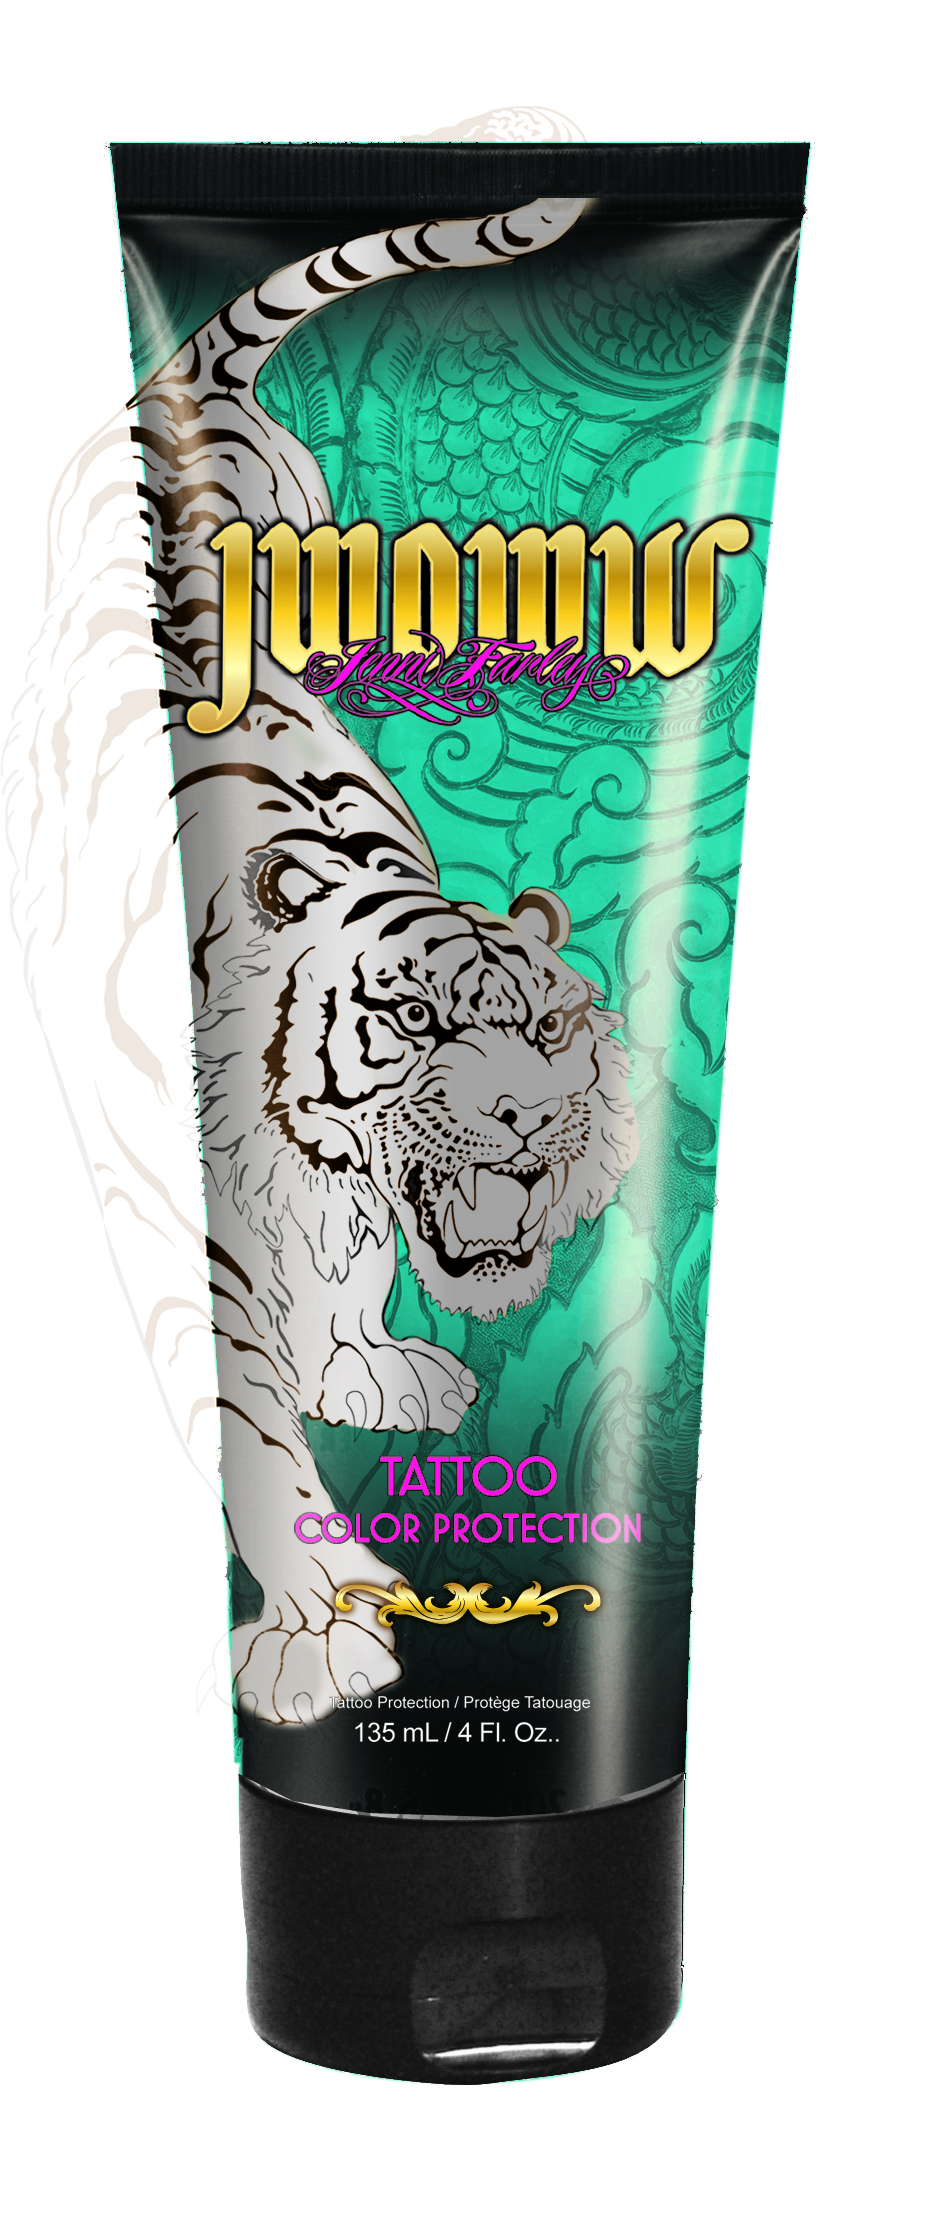 Tattoo Color Protection Cream